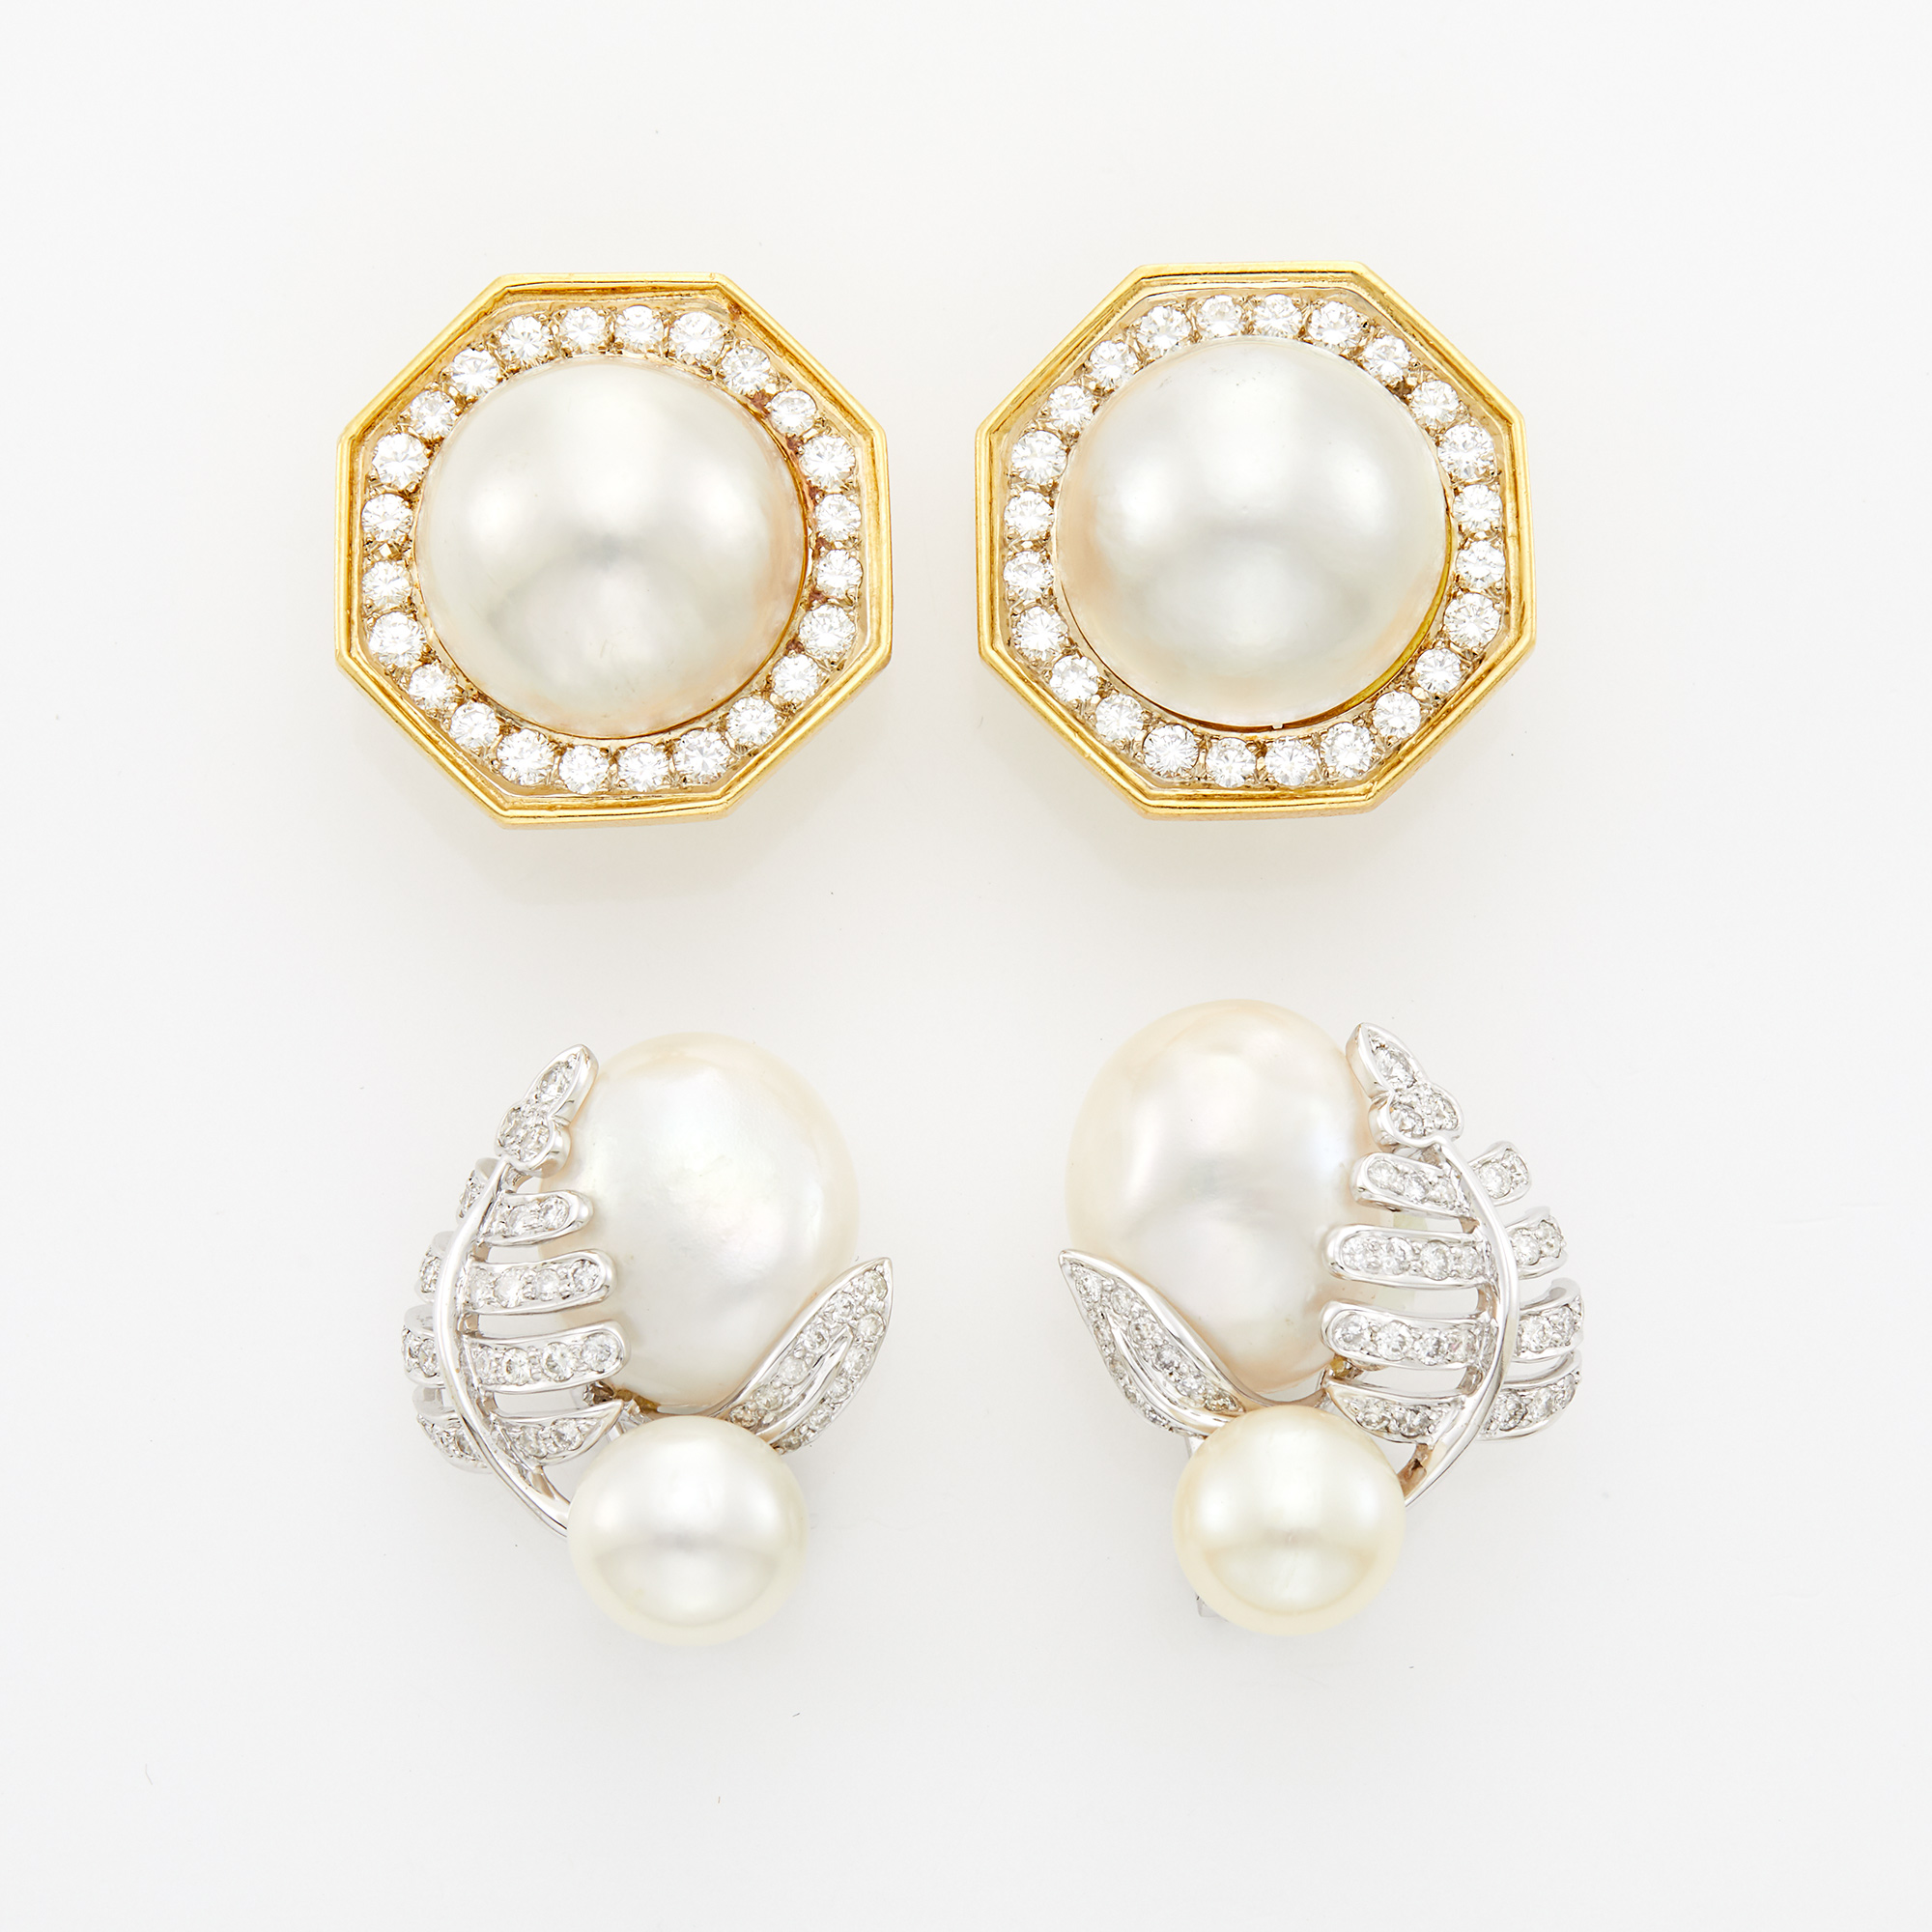 Lot image - Two Pairs of Gold, White Gold, Cultured Pearl and Diamond Earrings